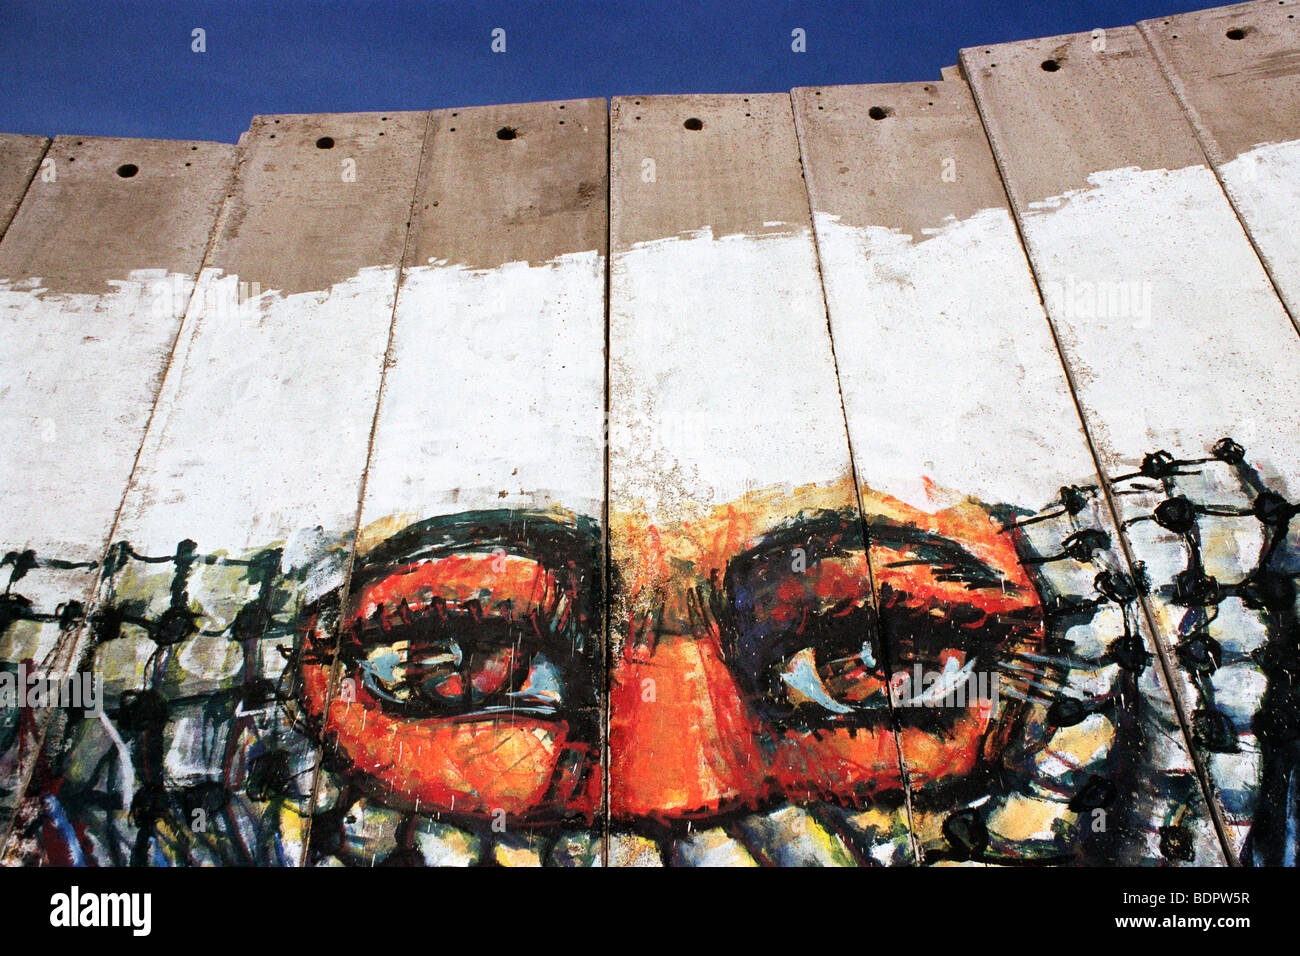 Graffiti on the West Bank wall, Bethlehem - Stock Image